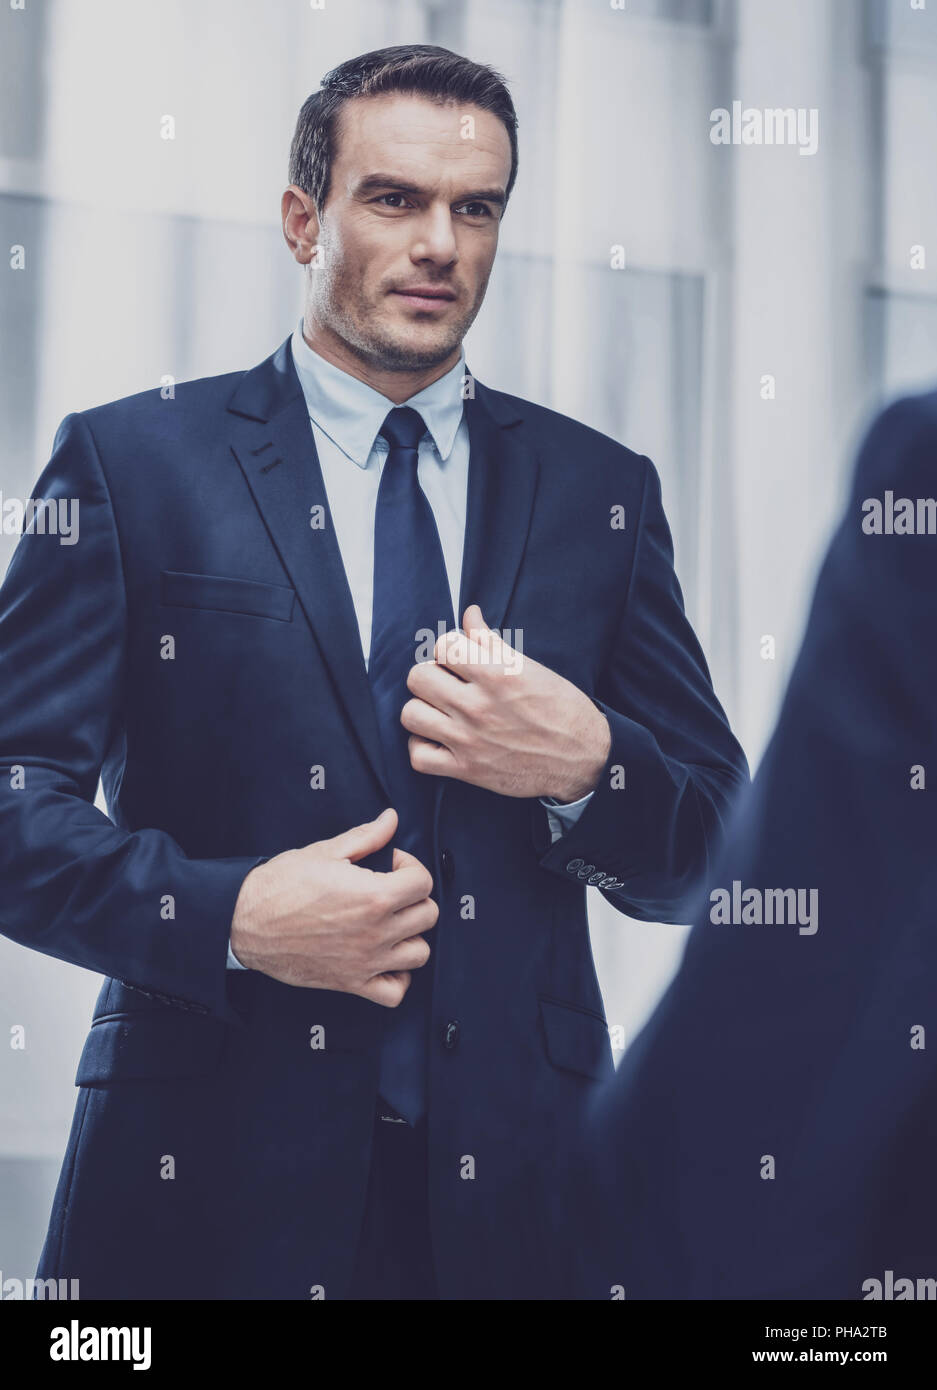 Handsome man trying on jacket - Stock Image